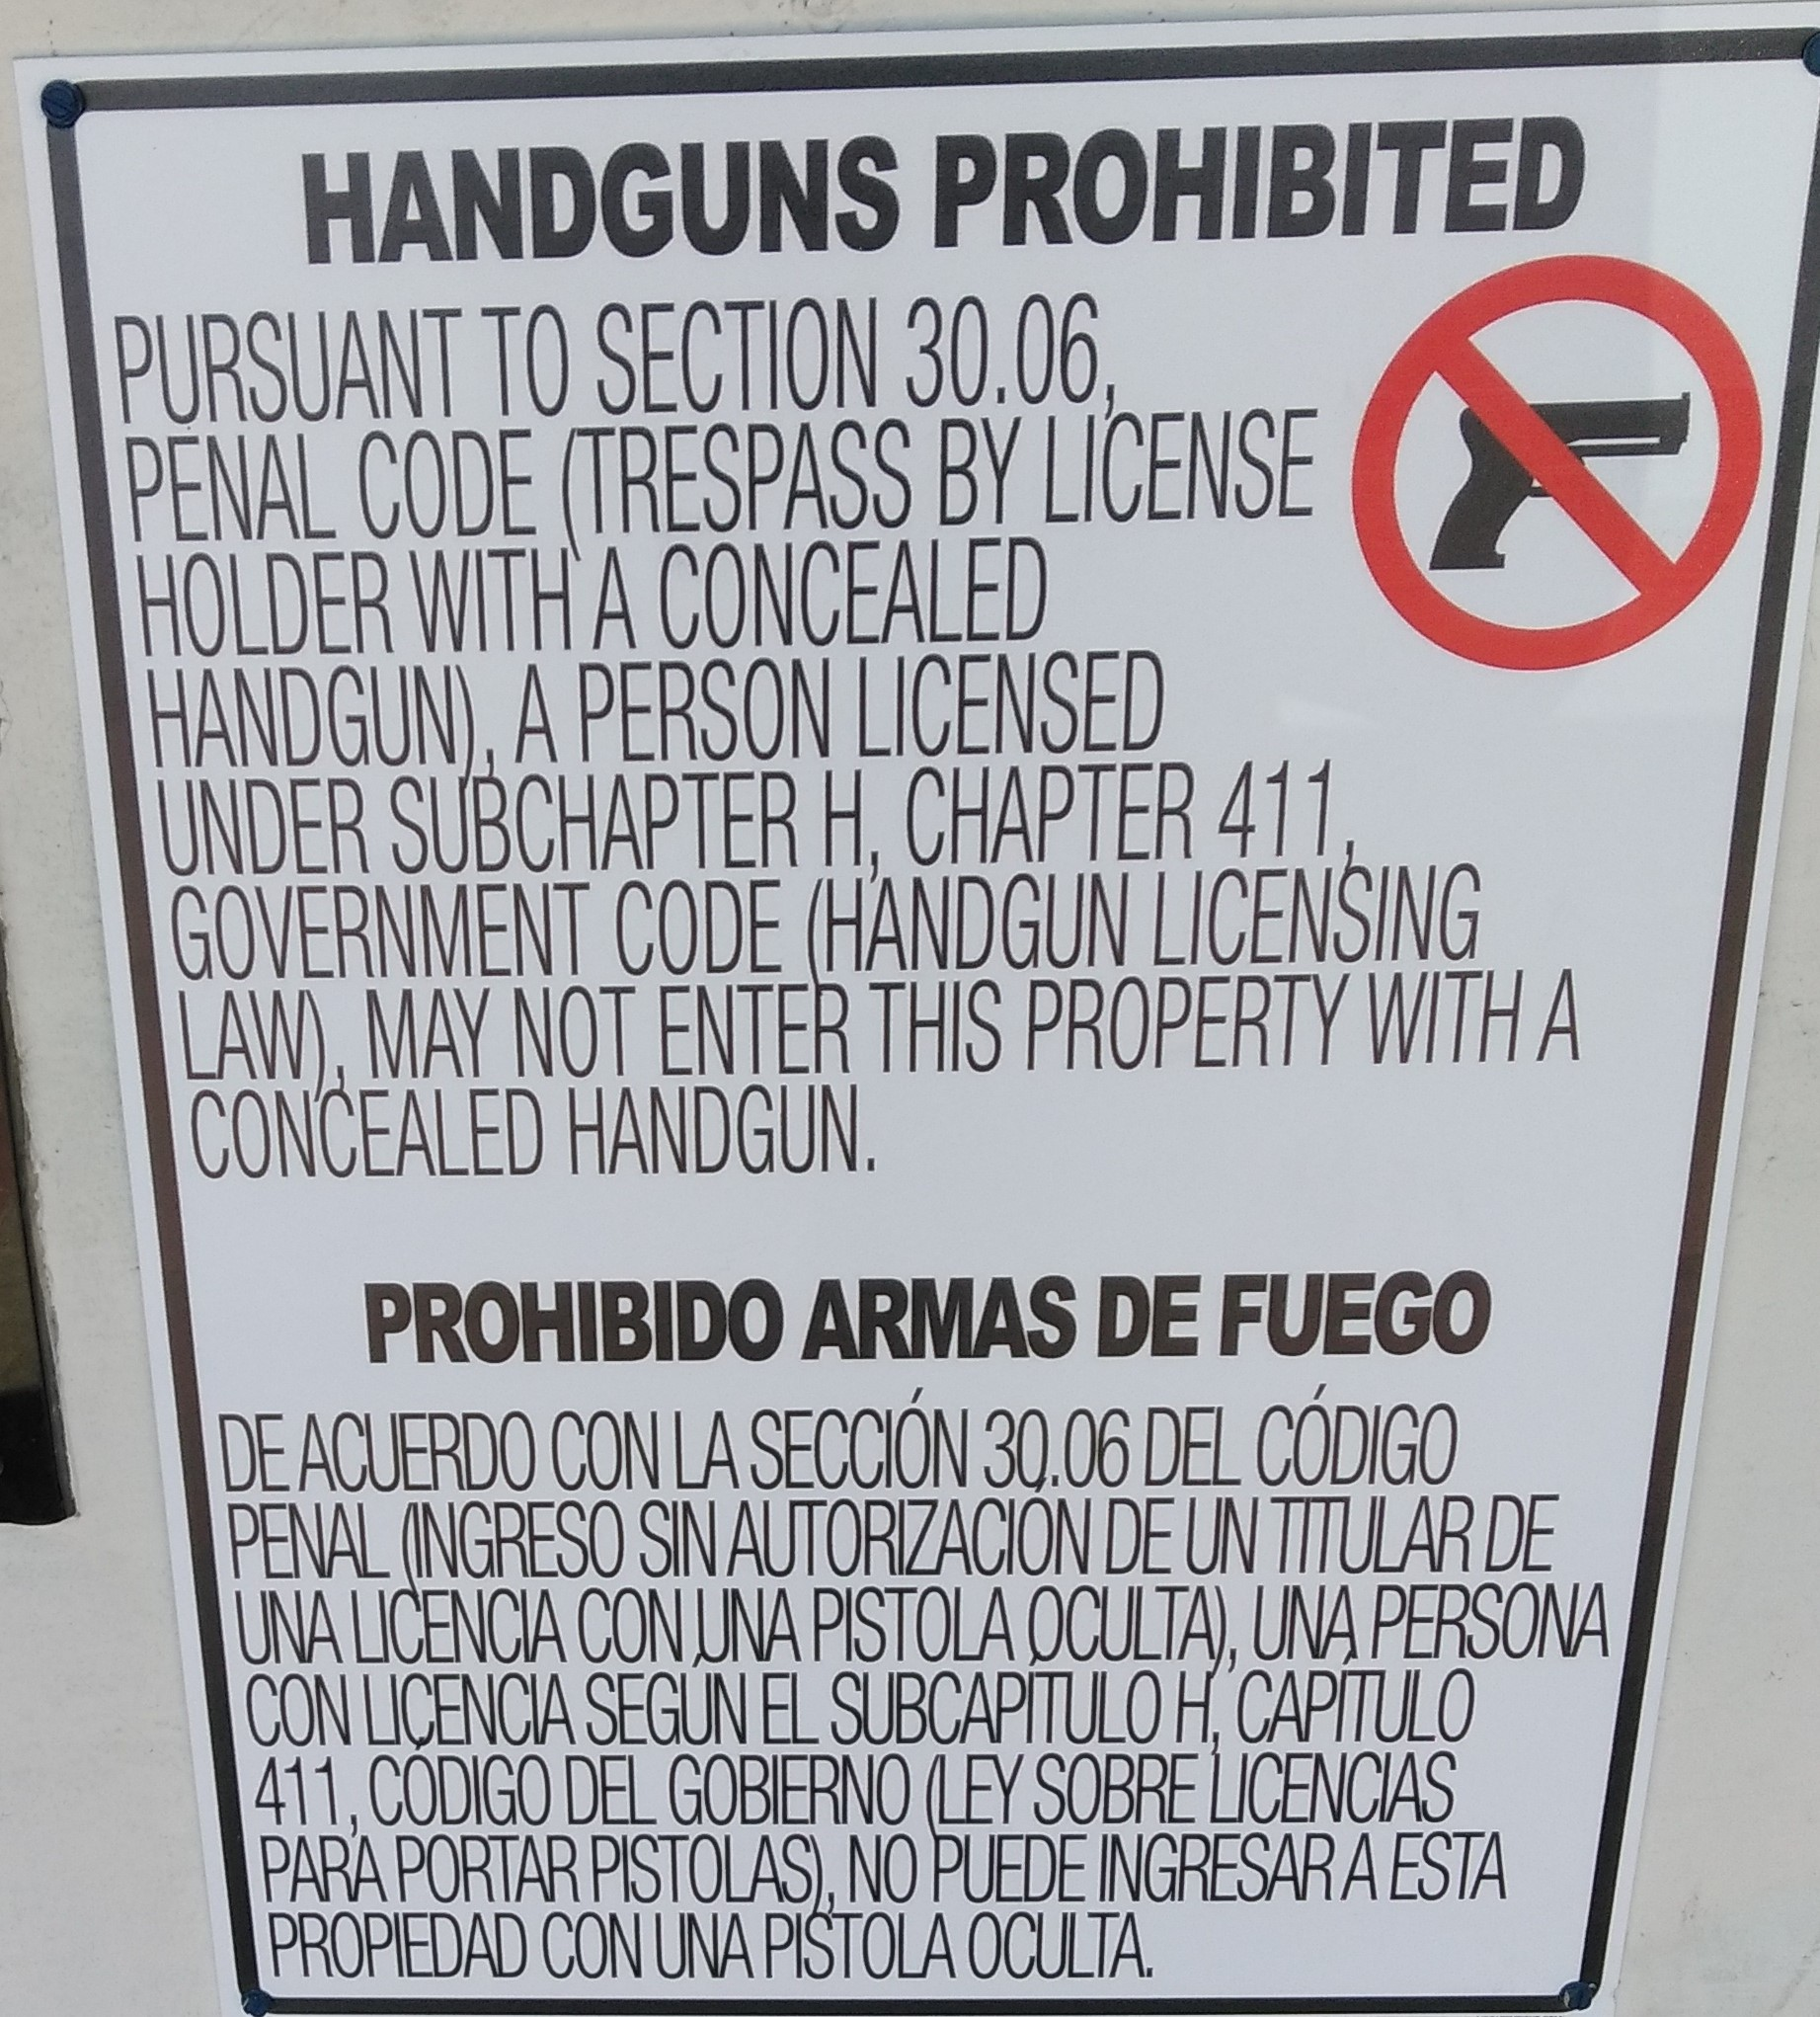 The Dallas County Community College District posted more than $20,000 in signage related to campus carry laws.